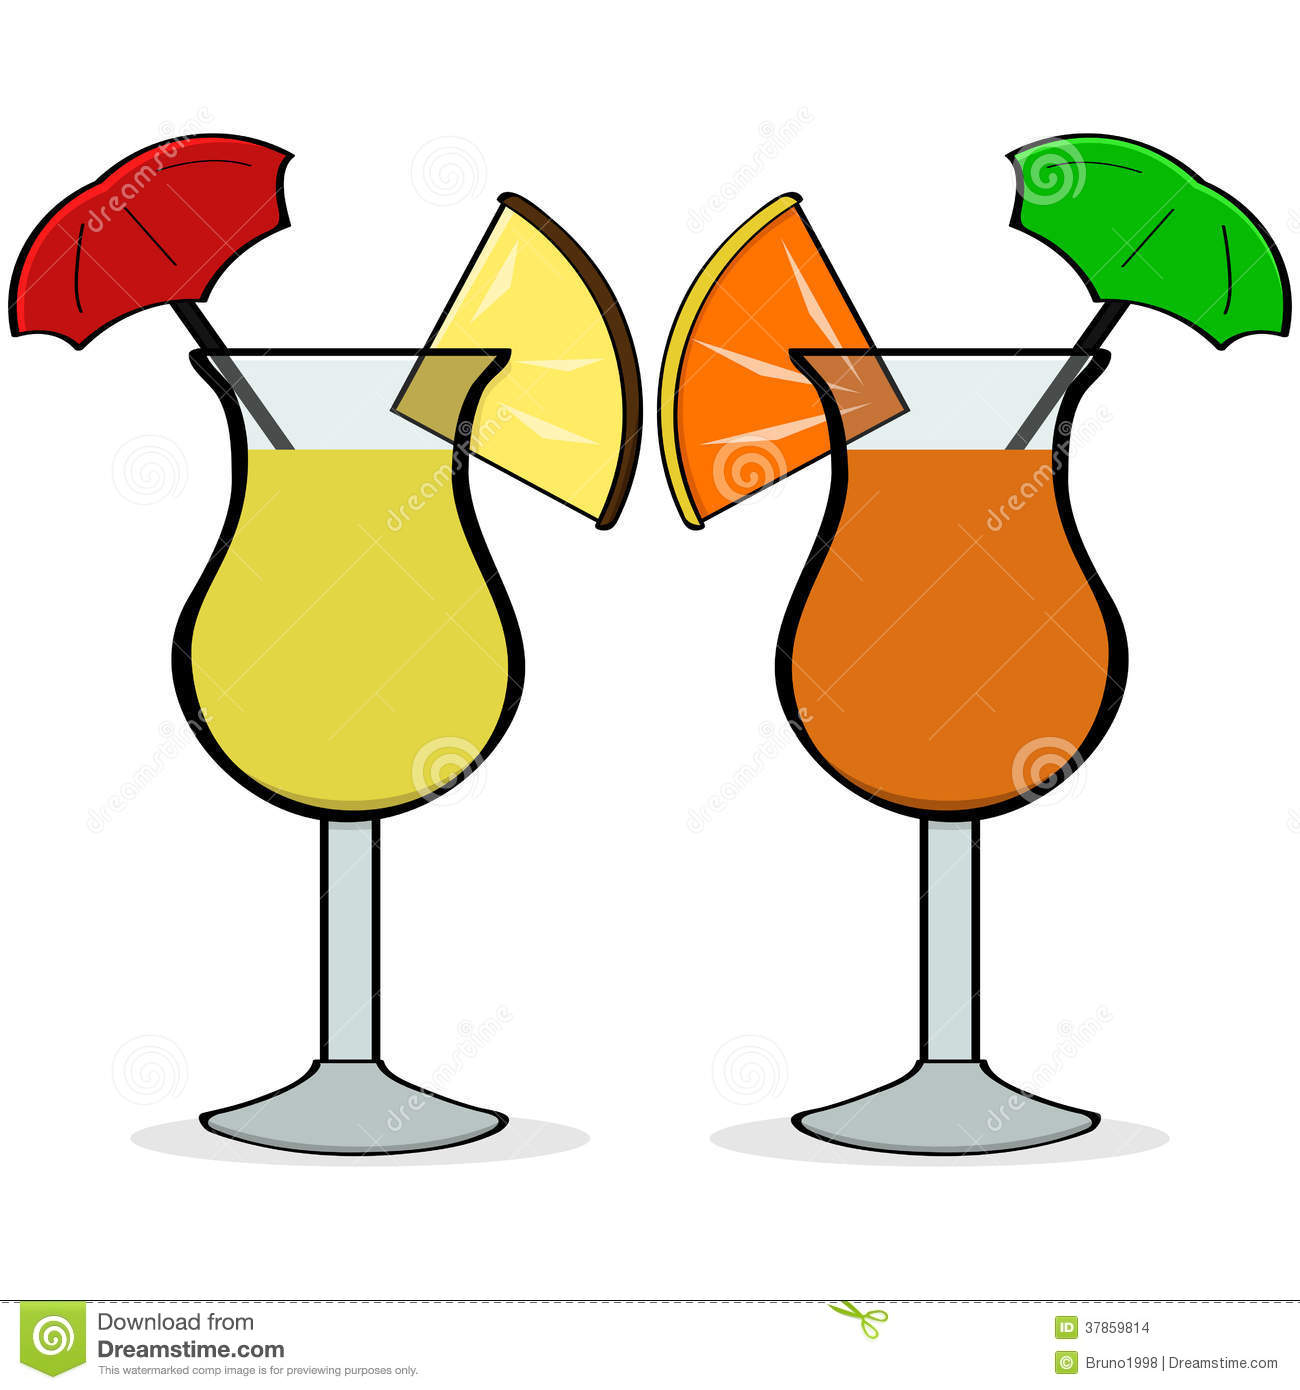 Tropical Drink With Umbrella Cartoon | galleryhip.com - The Hippest ...